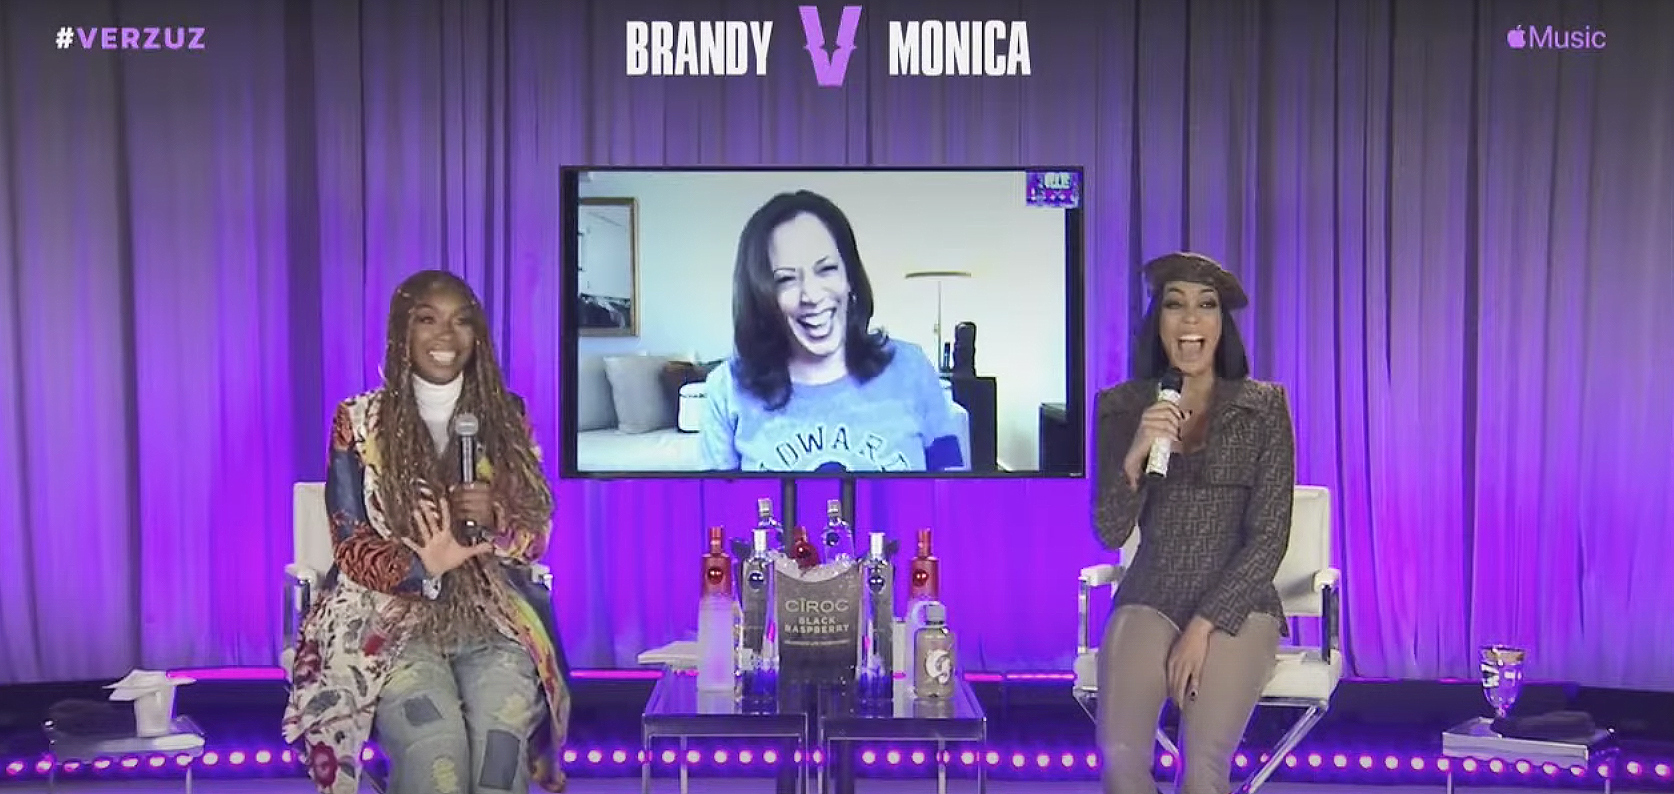 Brandy Was Really Happy to Reunite With Monica for Verzuz Battle